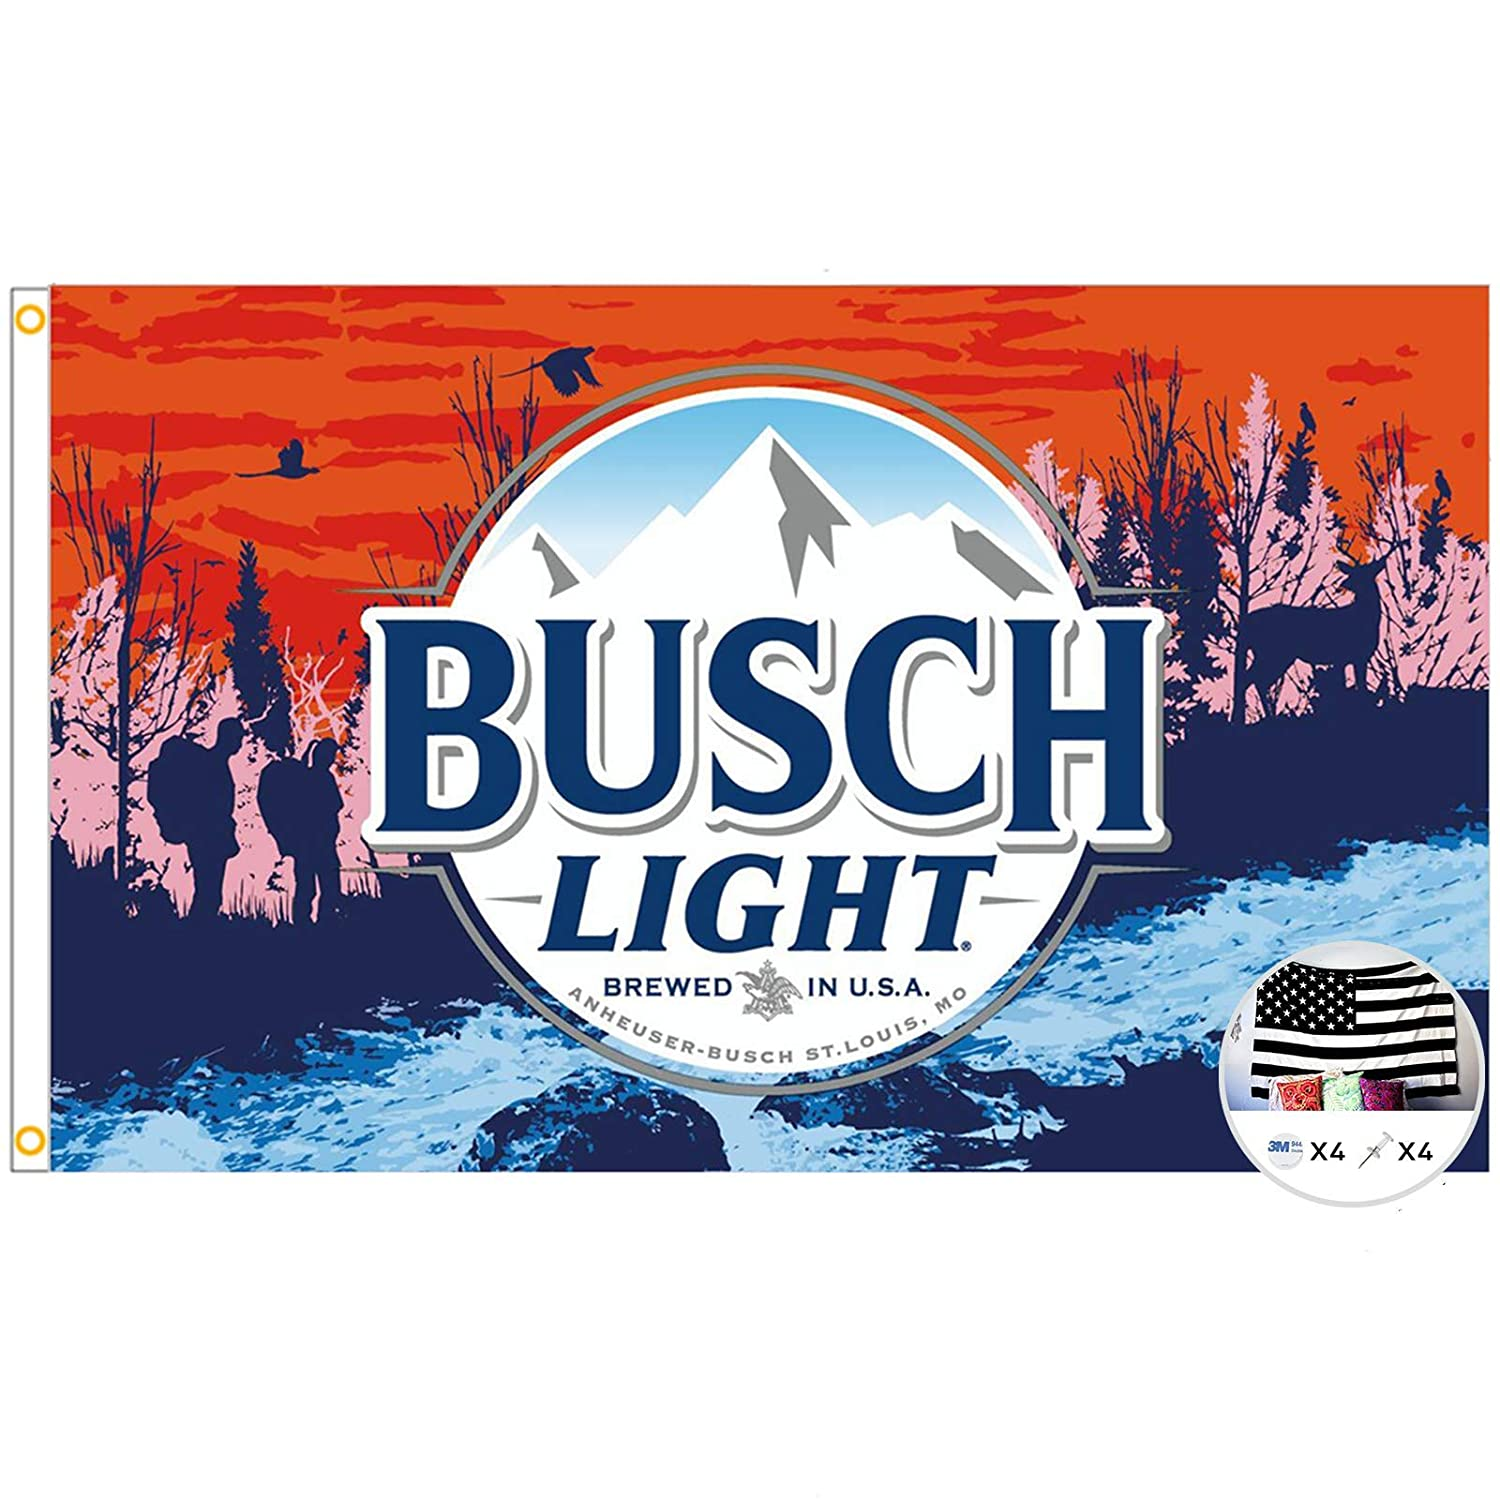 Flag for Beer 3x5 Feet Sunset Hikers Banner,Cool Beer Flags Funny Poster UV Resistance Fading & Durable Man Cave Wall Flag with Brass Grommets for College Dorm Room Decor,Outdoor,Parties,Gift